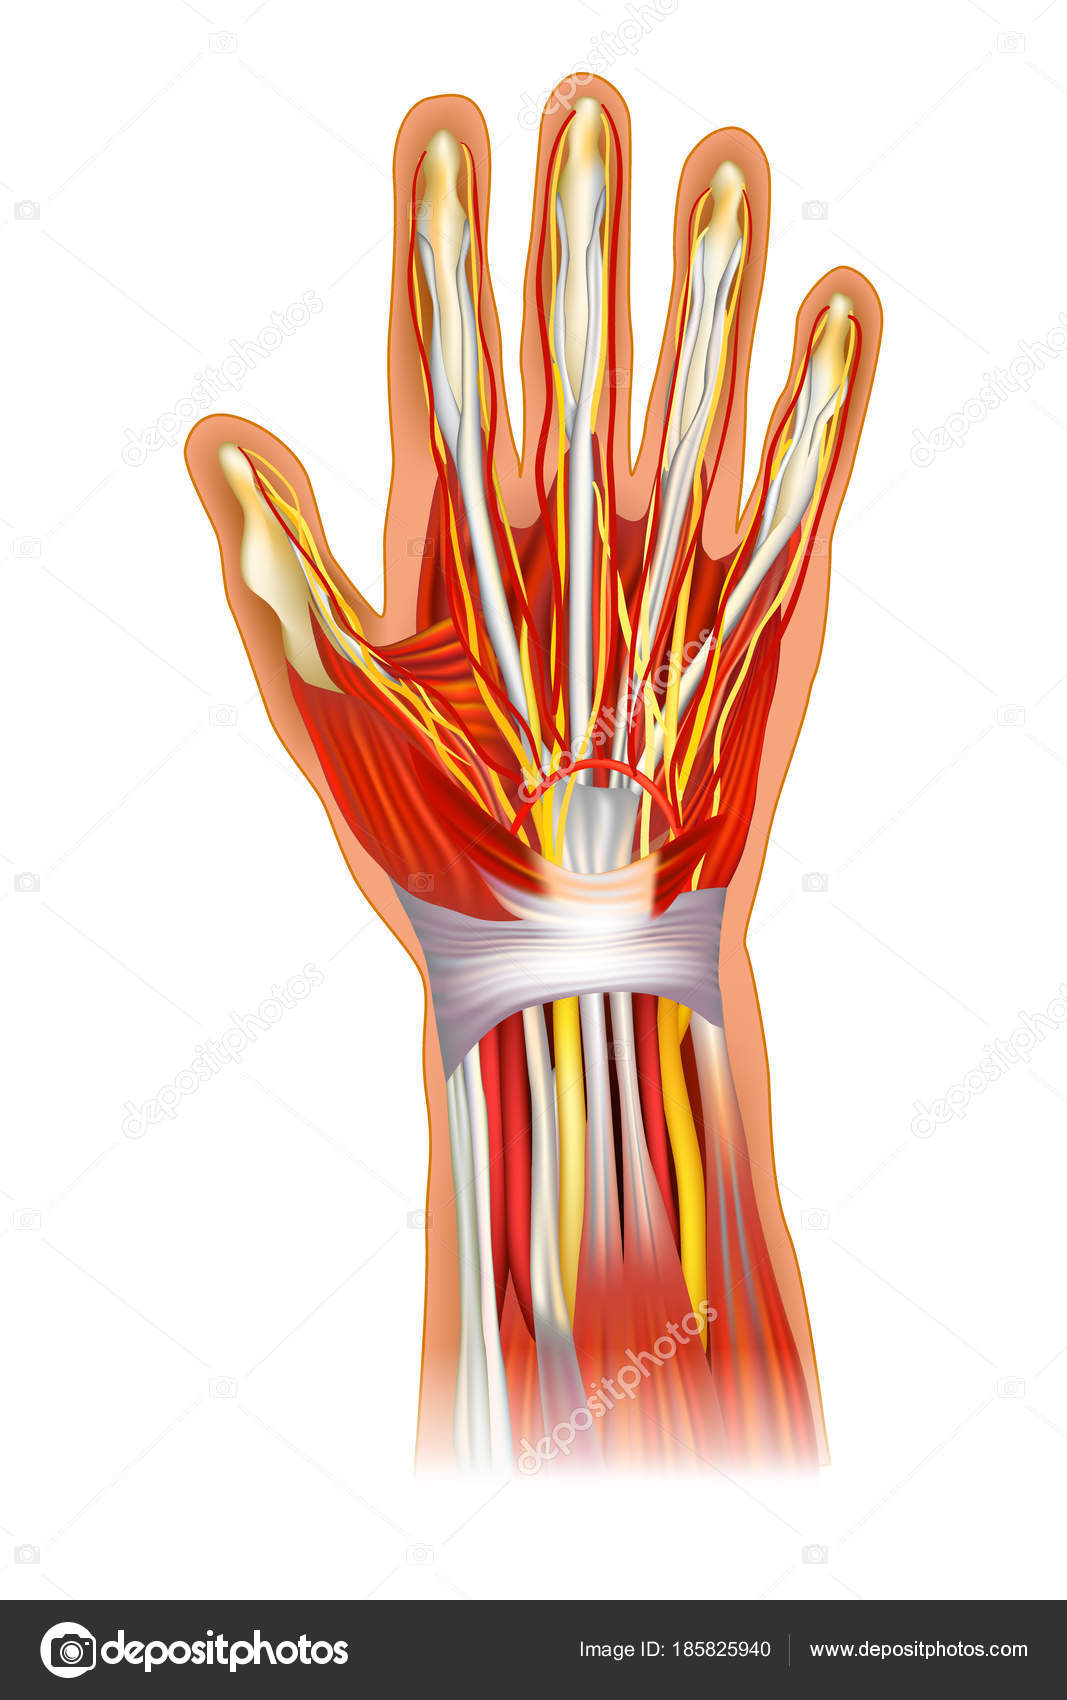 Human Hand Anatomy Illustration Anatomy Wrist Learning Bone Muscle ...